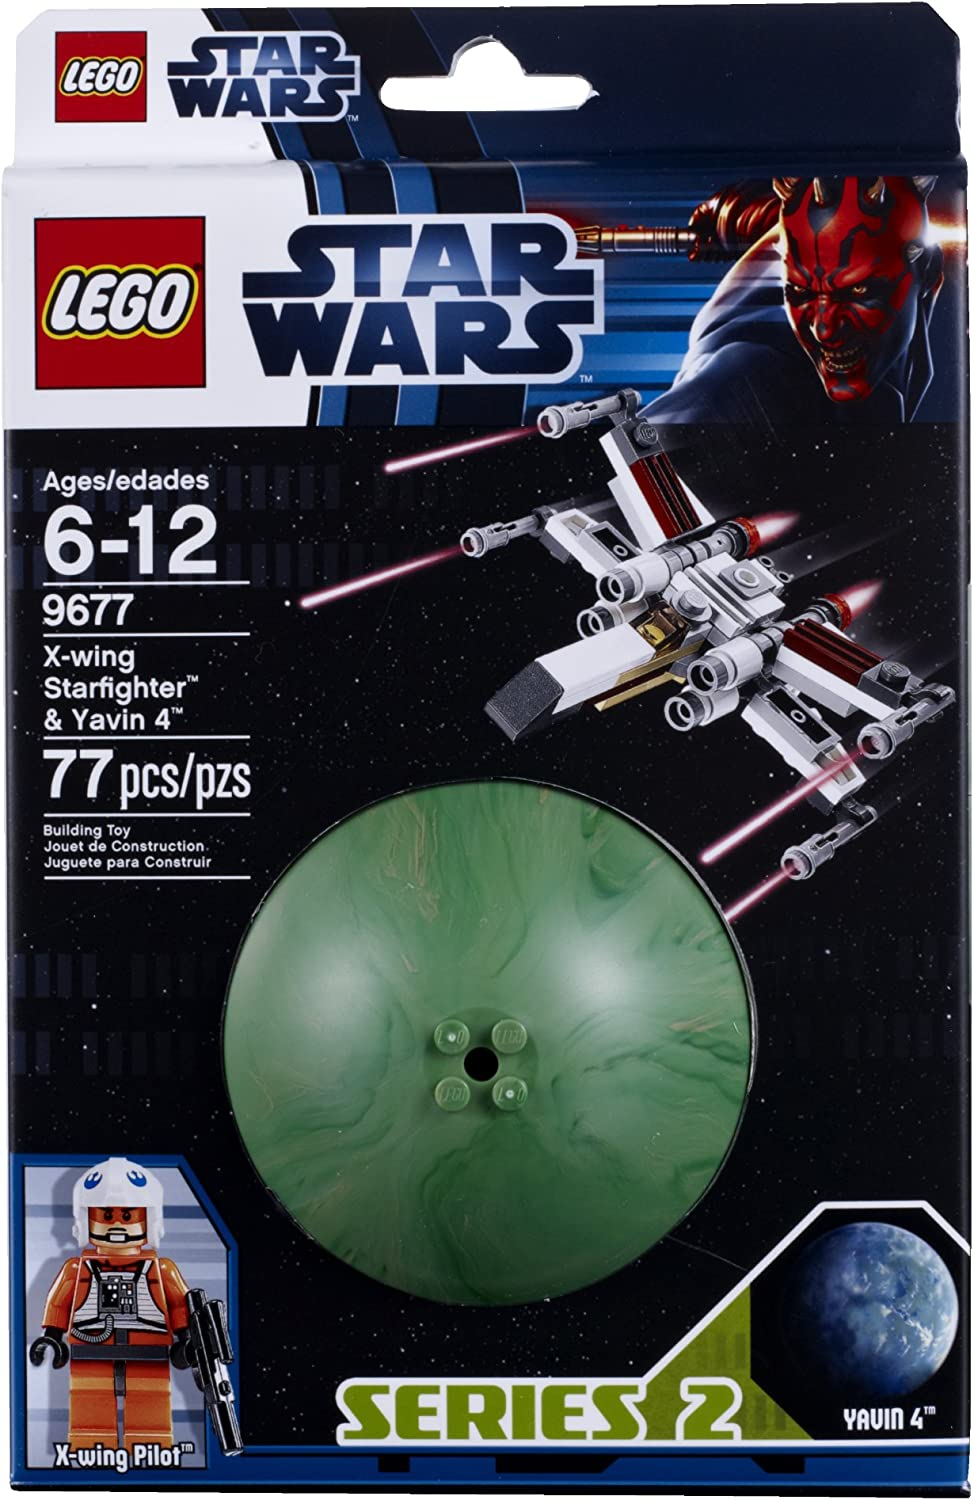 LEGO Star Wars 9677 Xwing Starfighter and Yavin 4